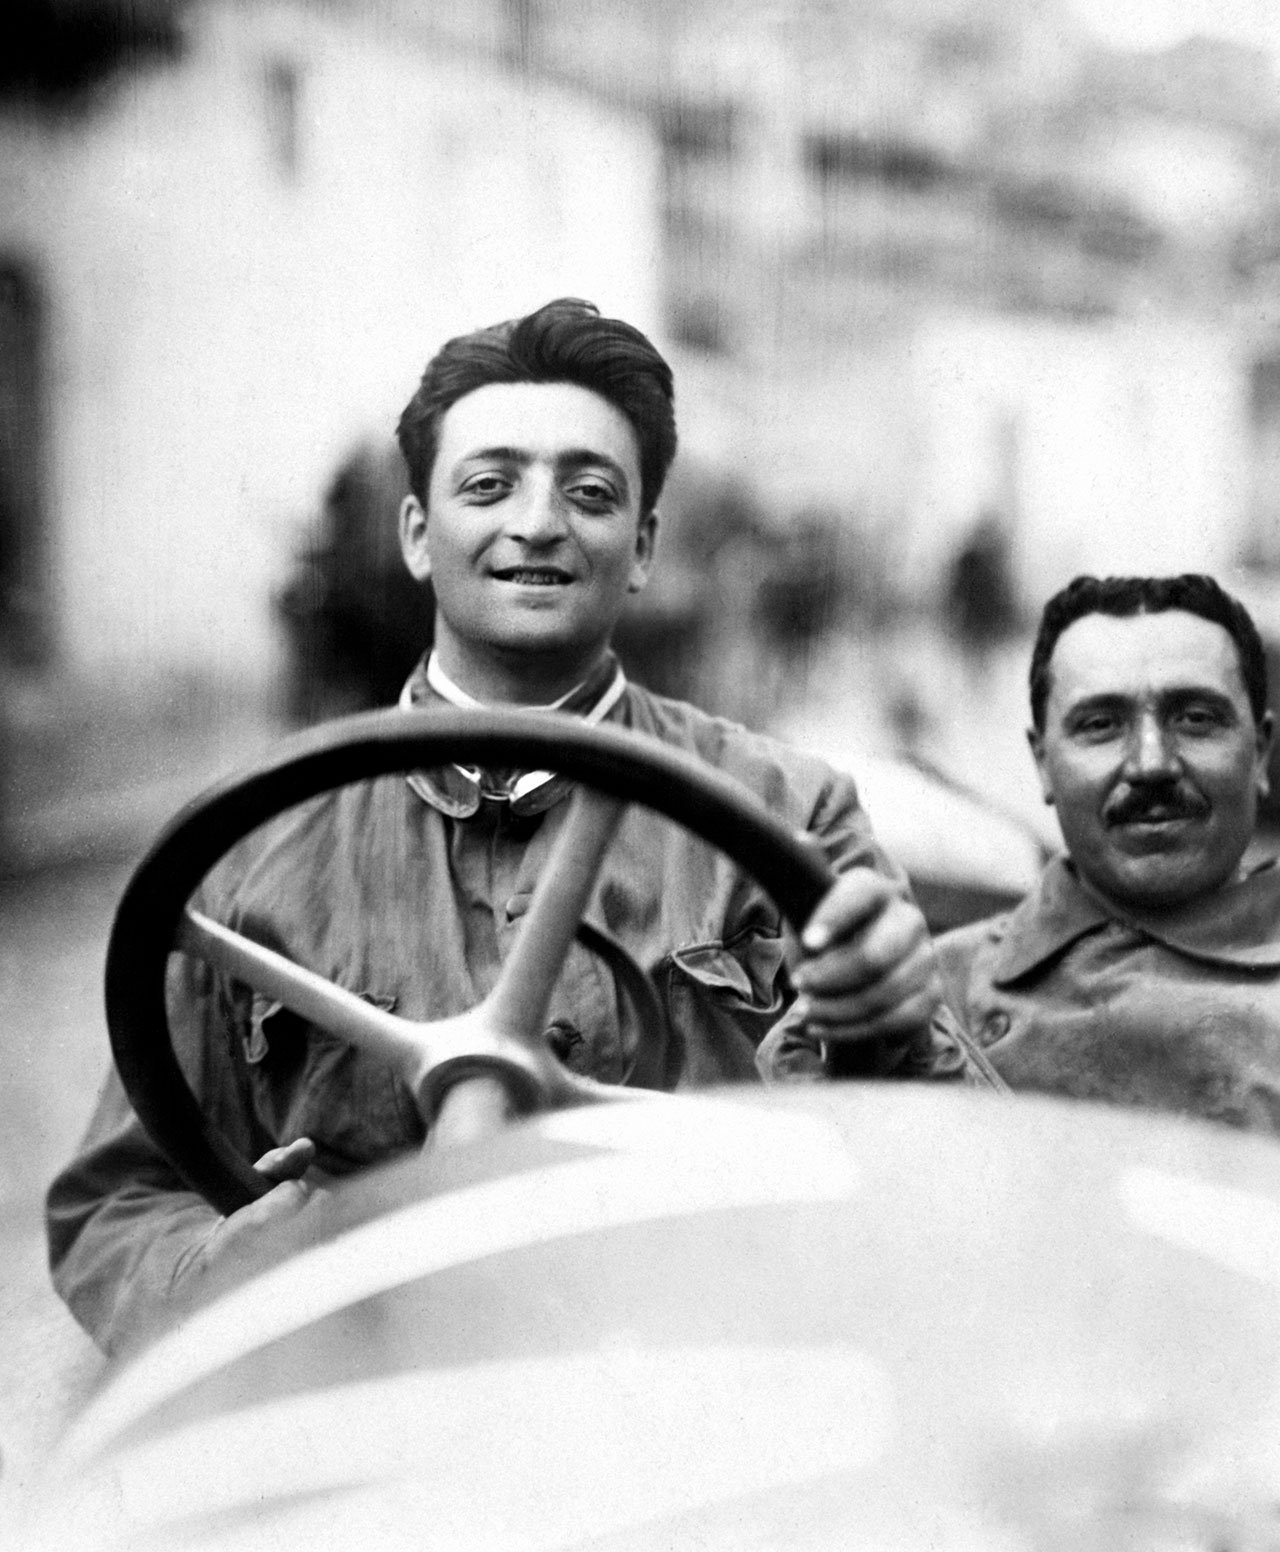 Enzo Ferrari at the Targa Florio in 1920. - The car is an Alfa Romeo 40-60 HP Racing Type. Photo courtesy of Ferrari.